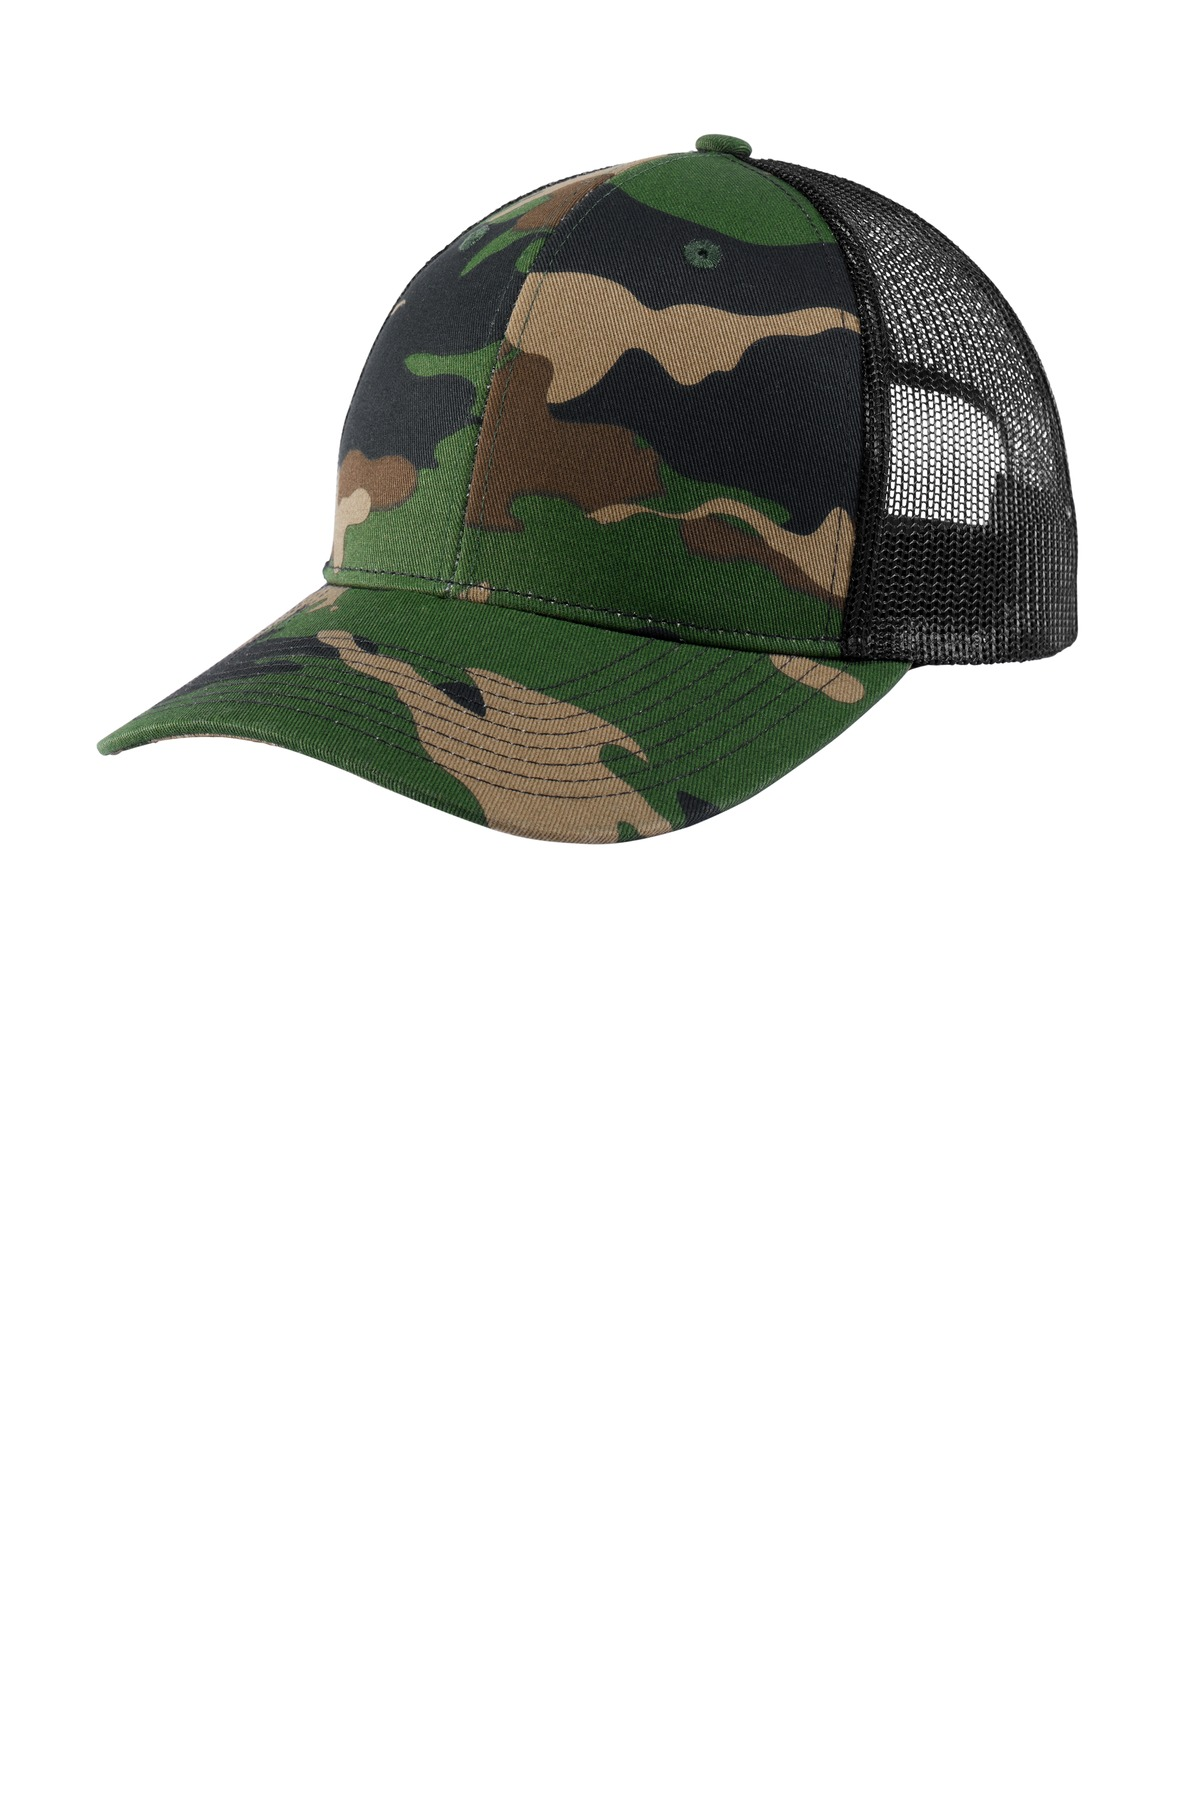 Port Authority ®  Snapback Trucker Cap. C112 - Woodland Camo/ Black